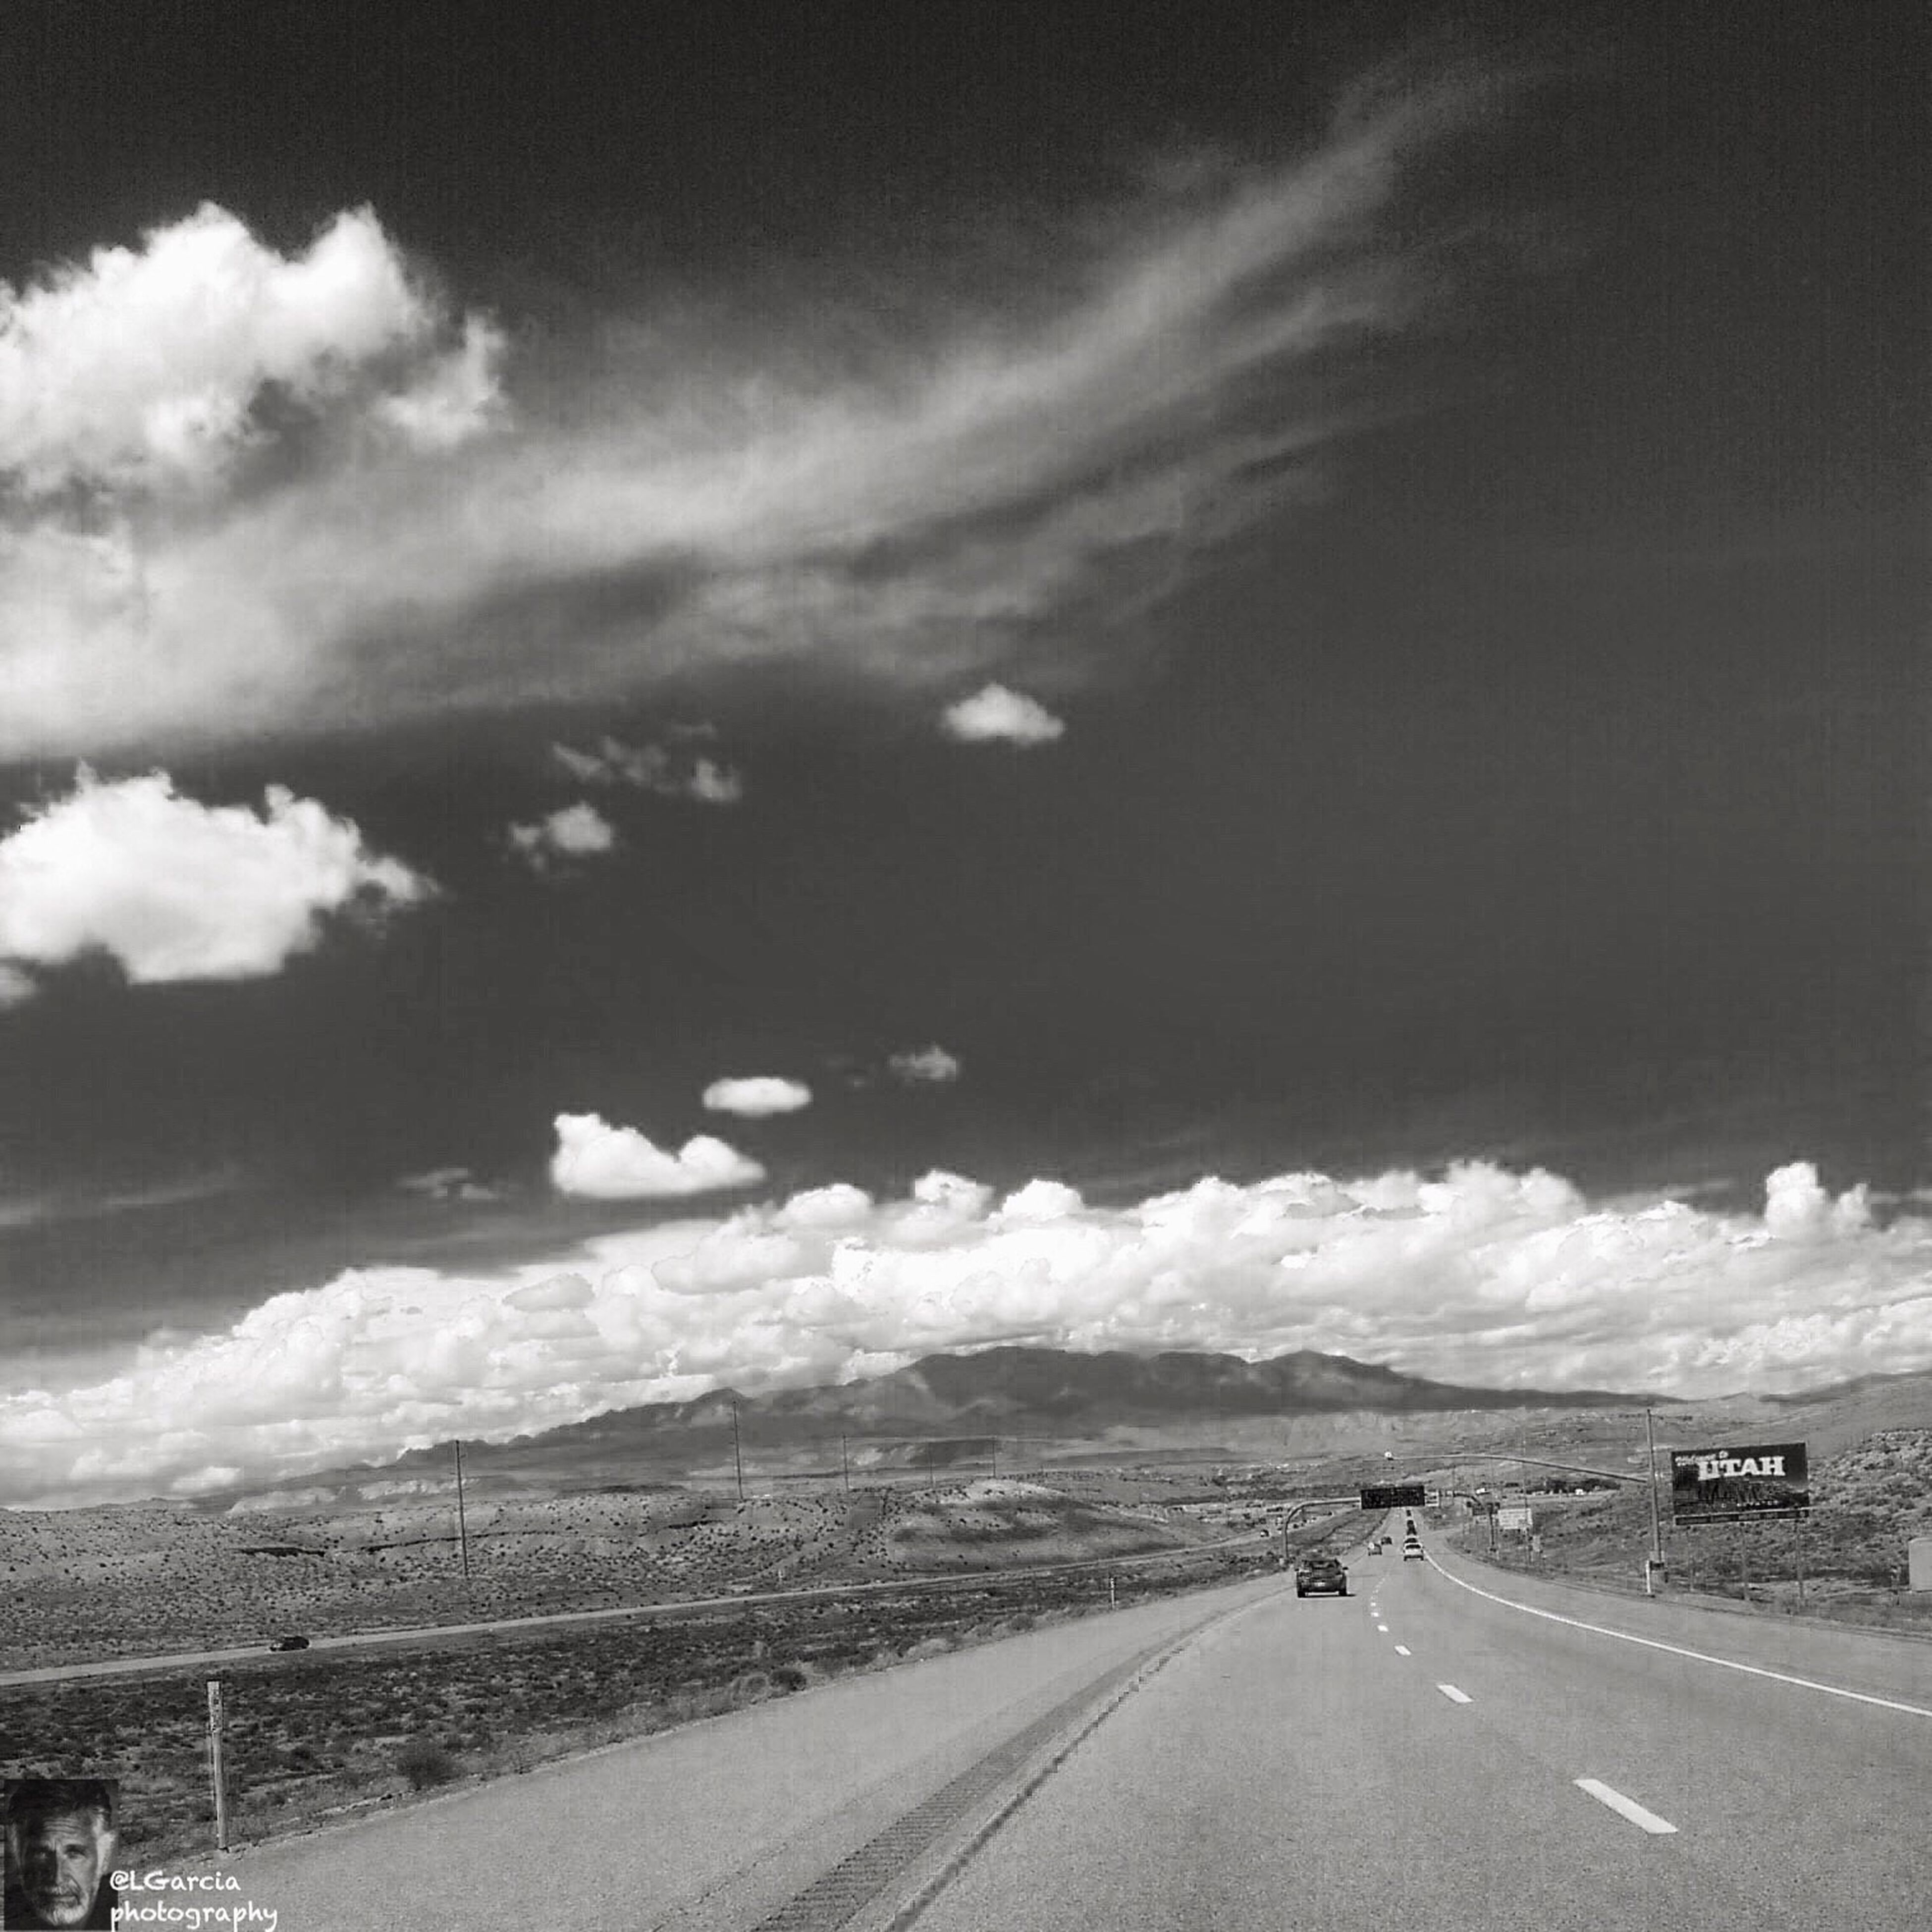 Utah 2015. LGarciaPhotography Iphone 6 Plus IPhone Monochrome Monochromatic EyeEm Best Shots - Black + White Black & White Blackandwhite Bnw Bnw_collection Bnwphotography Bnw_captures Bnw_friday_eyeemchallenge Light Clouds Mountains Nature Photography Enjoying The View Clouds And Sky Creative Light And Shadow Light And Shadow Mountain Utah Road Roadtrip